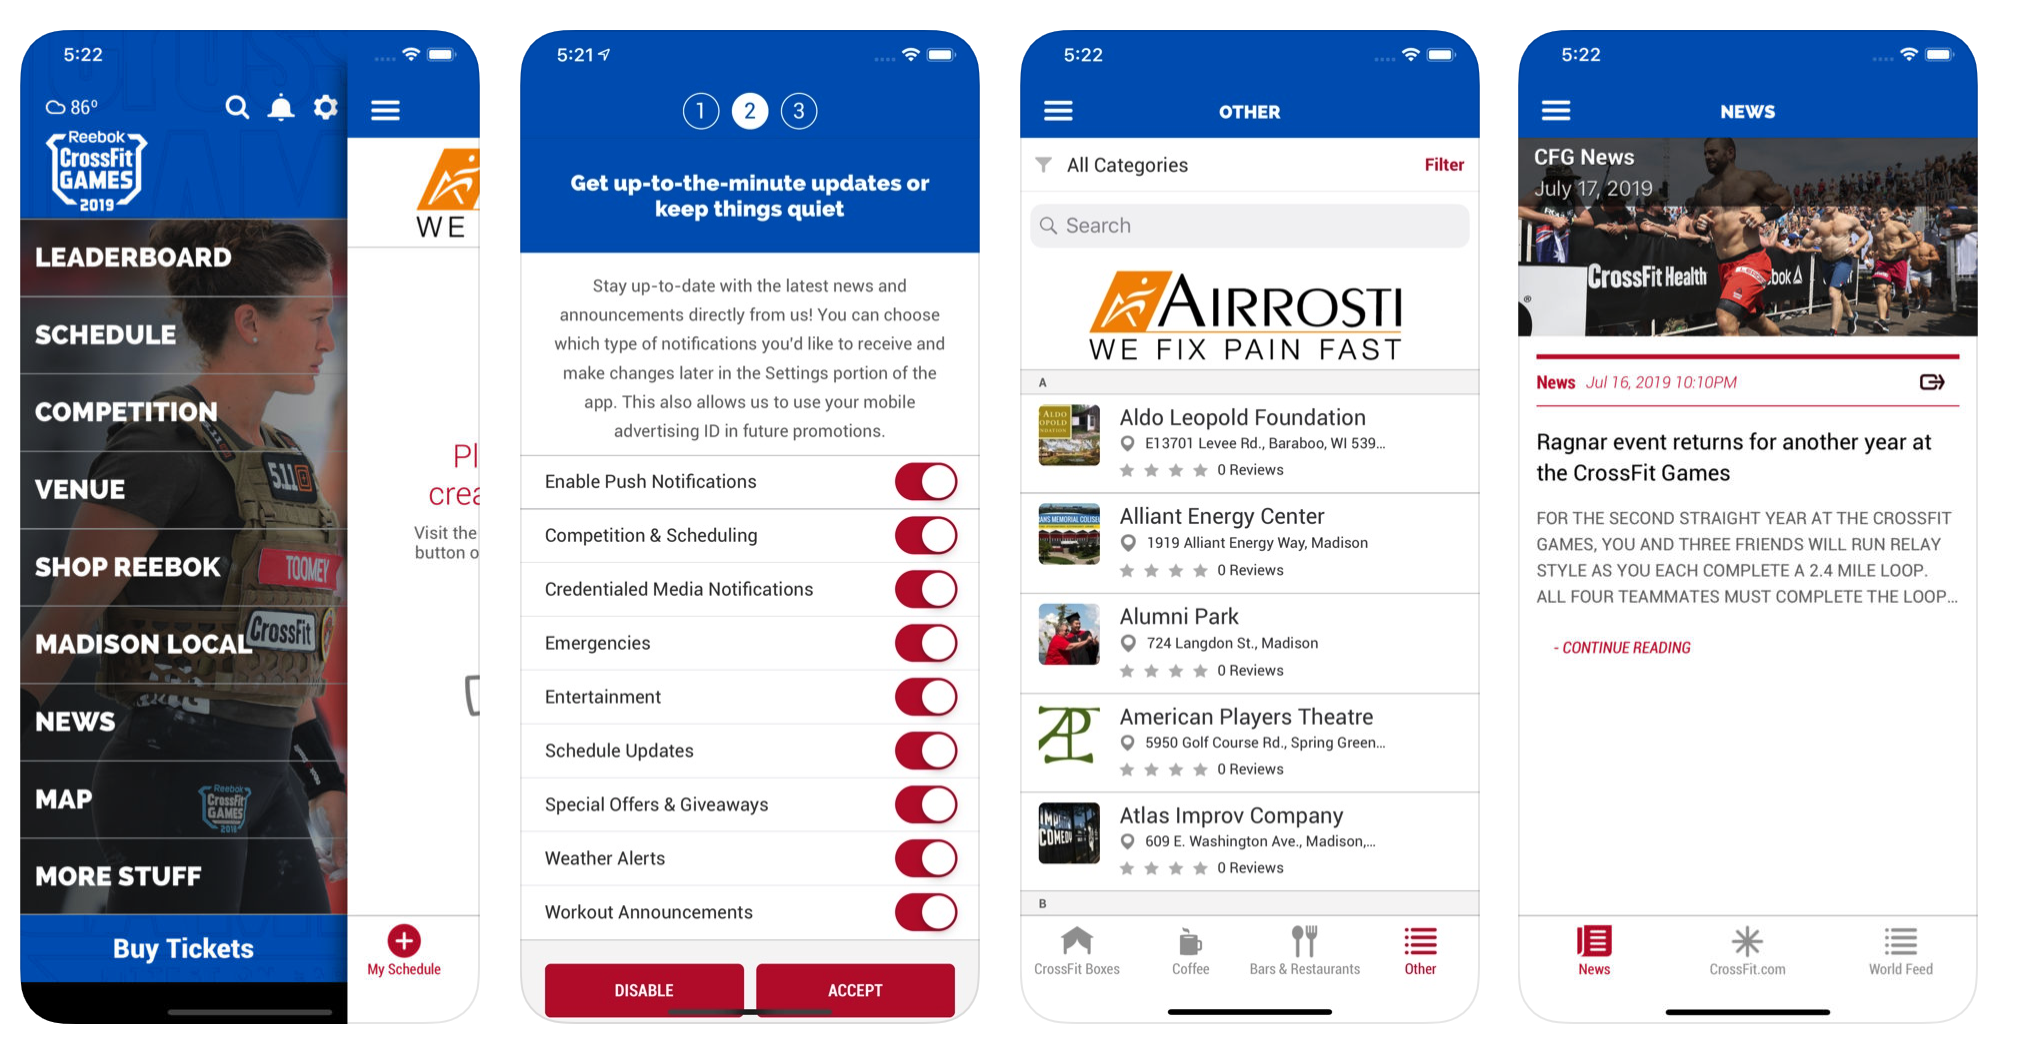 2019 Reebok CrossFit Games Event Guide App